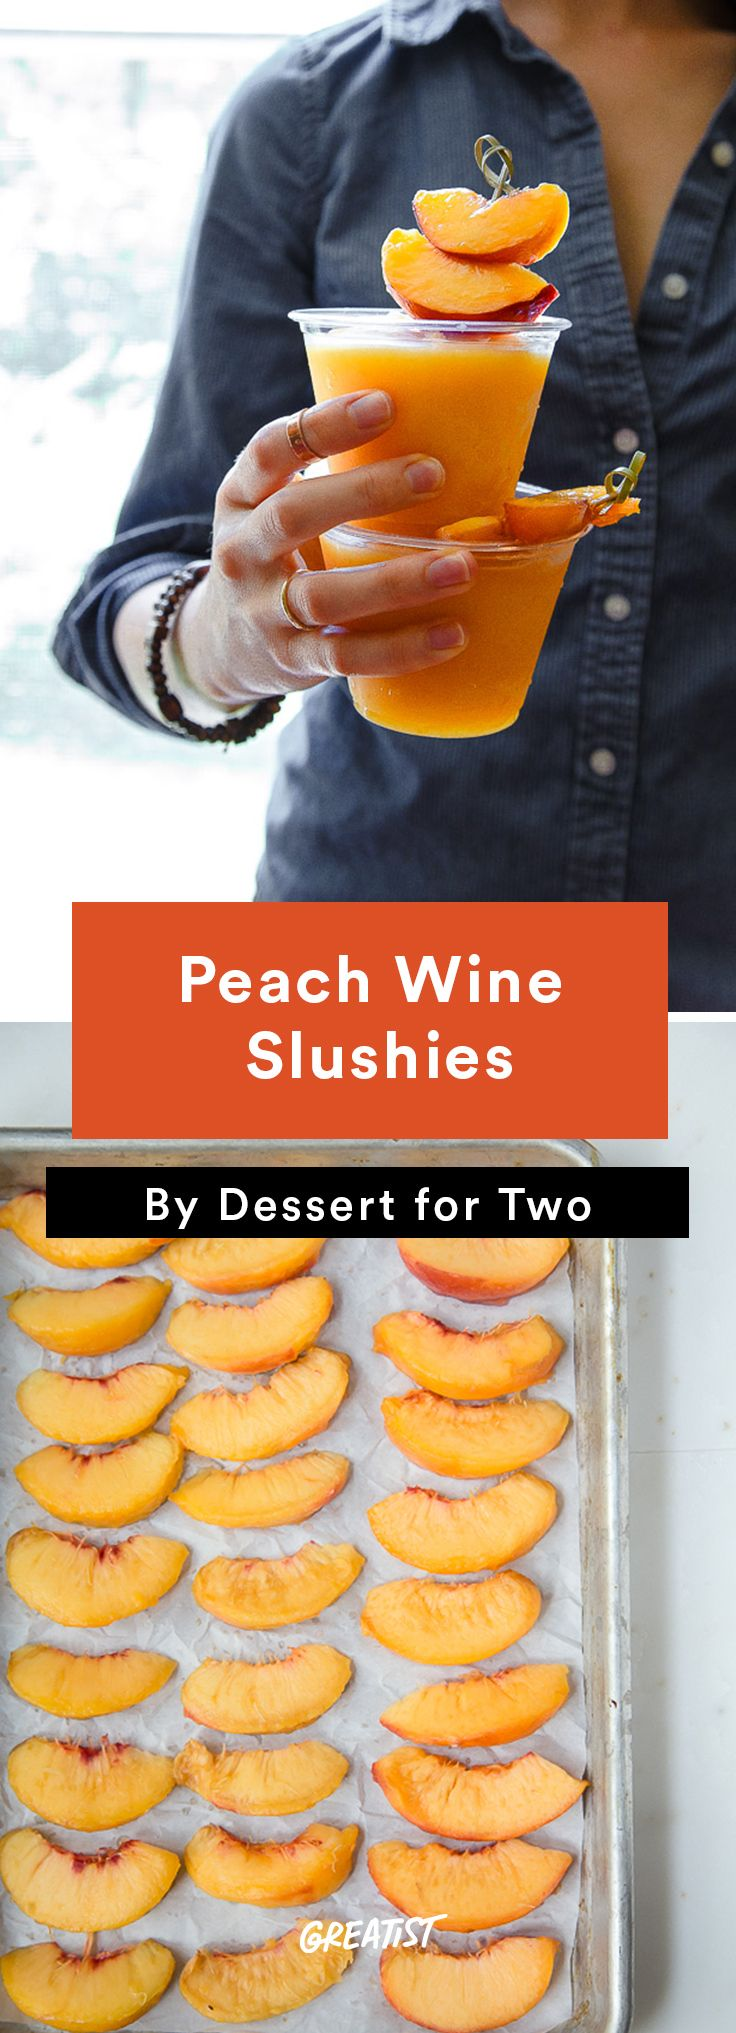 7. Peach Wine Slushies #cocktail #recipes http://greatist.com/eat/summer-cocktails-that-are-not-crazy-unhealthy